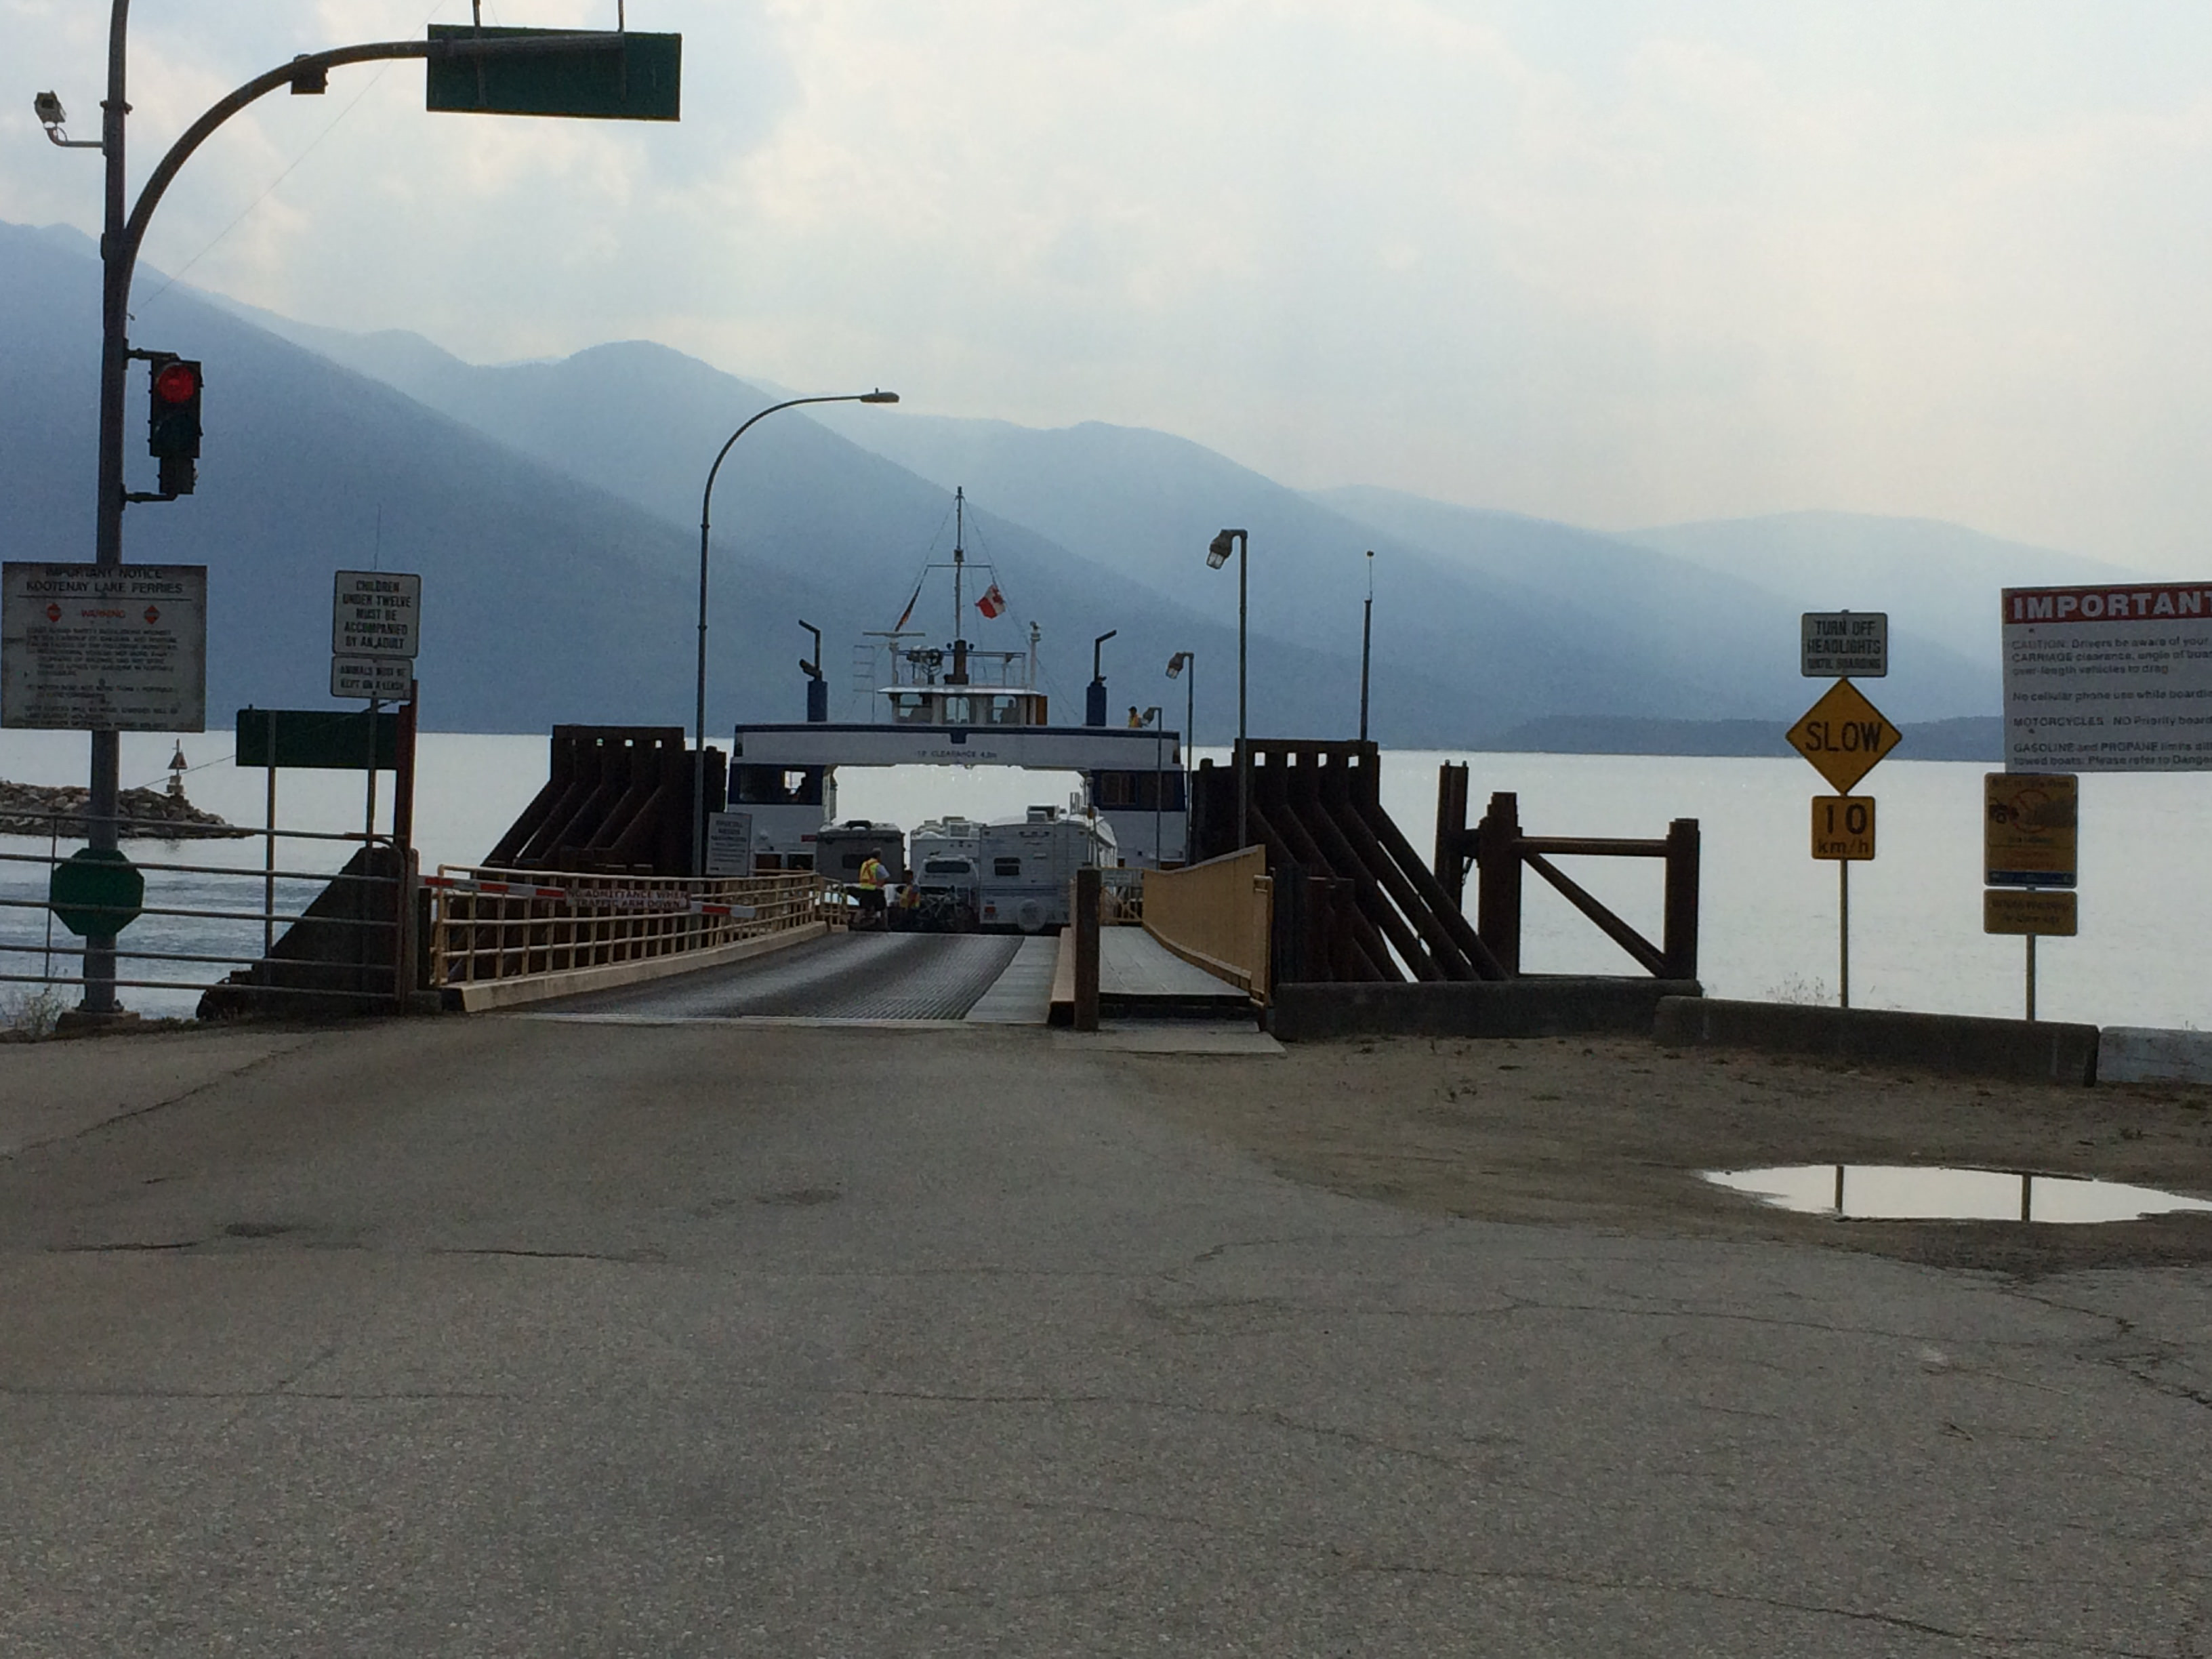 Kootenay Bay ferry